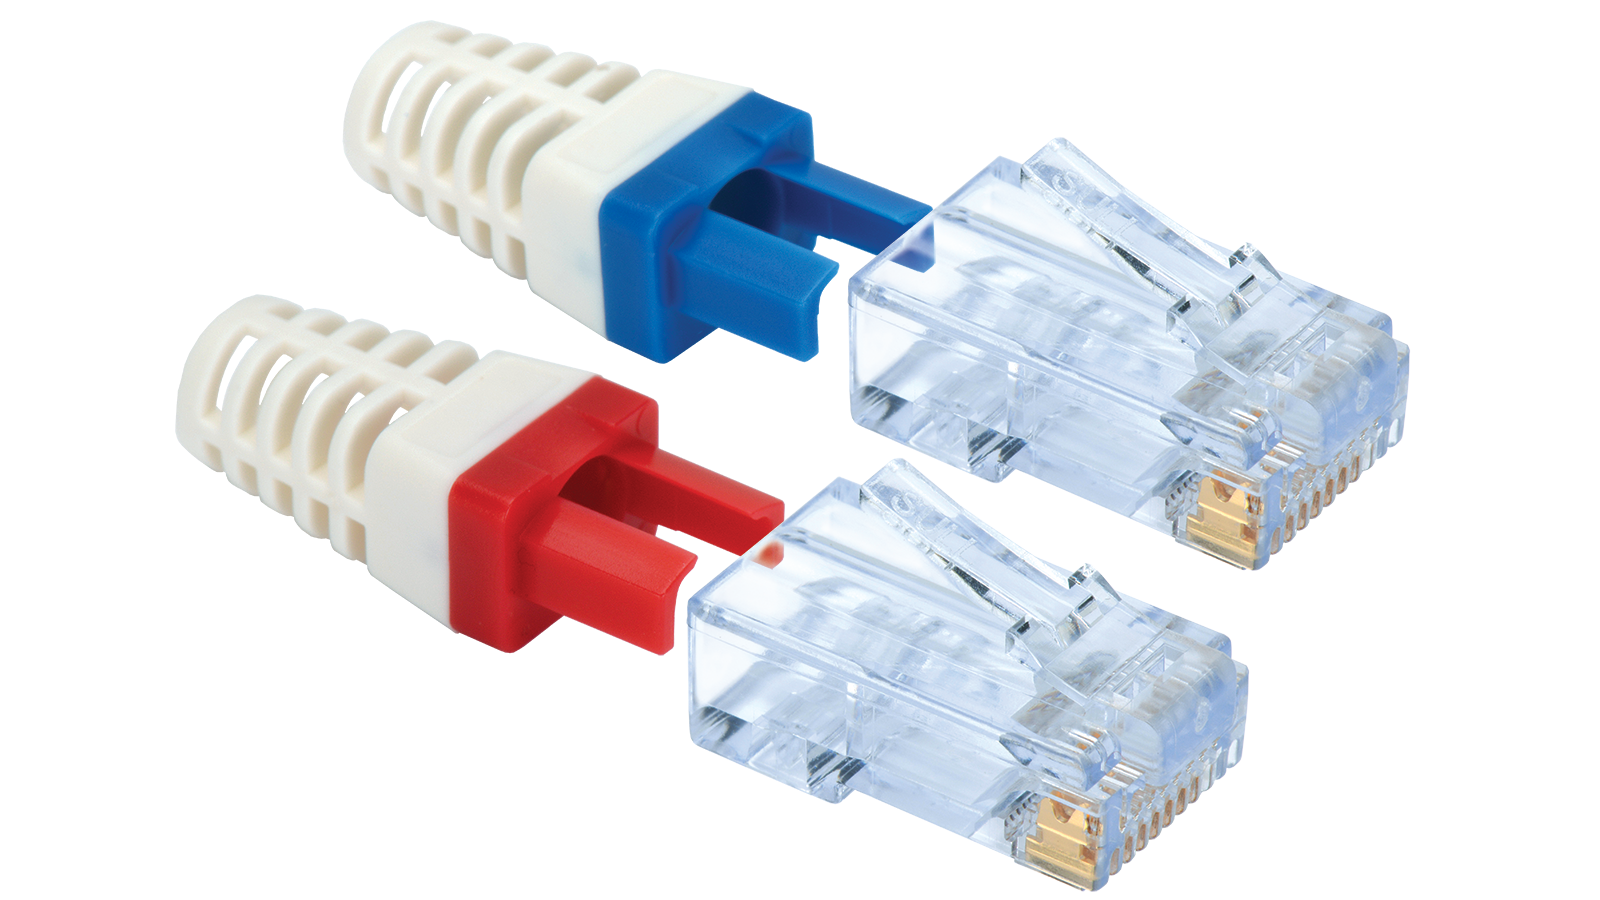 100 011lw category 6 ez rj45 plugs in a 30 pack with strain relief rh libertycable com RJ45 Wall Jack Wiring Diagram RJ45 Jack Wiring Diagram